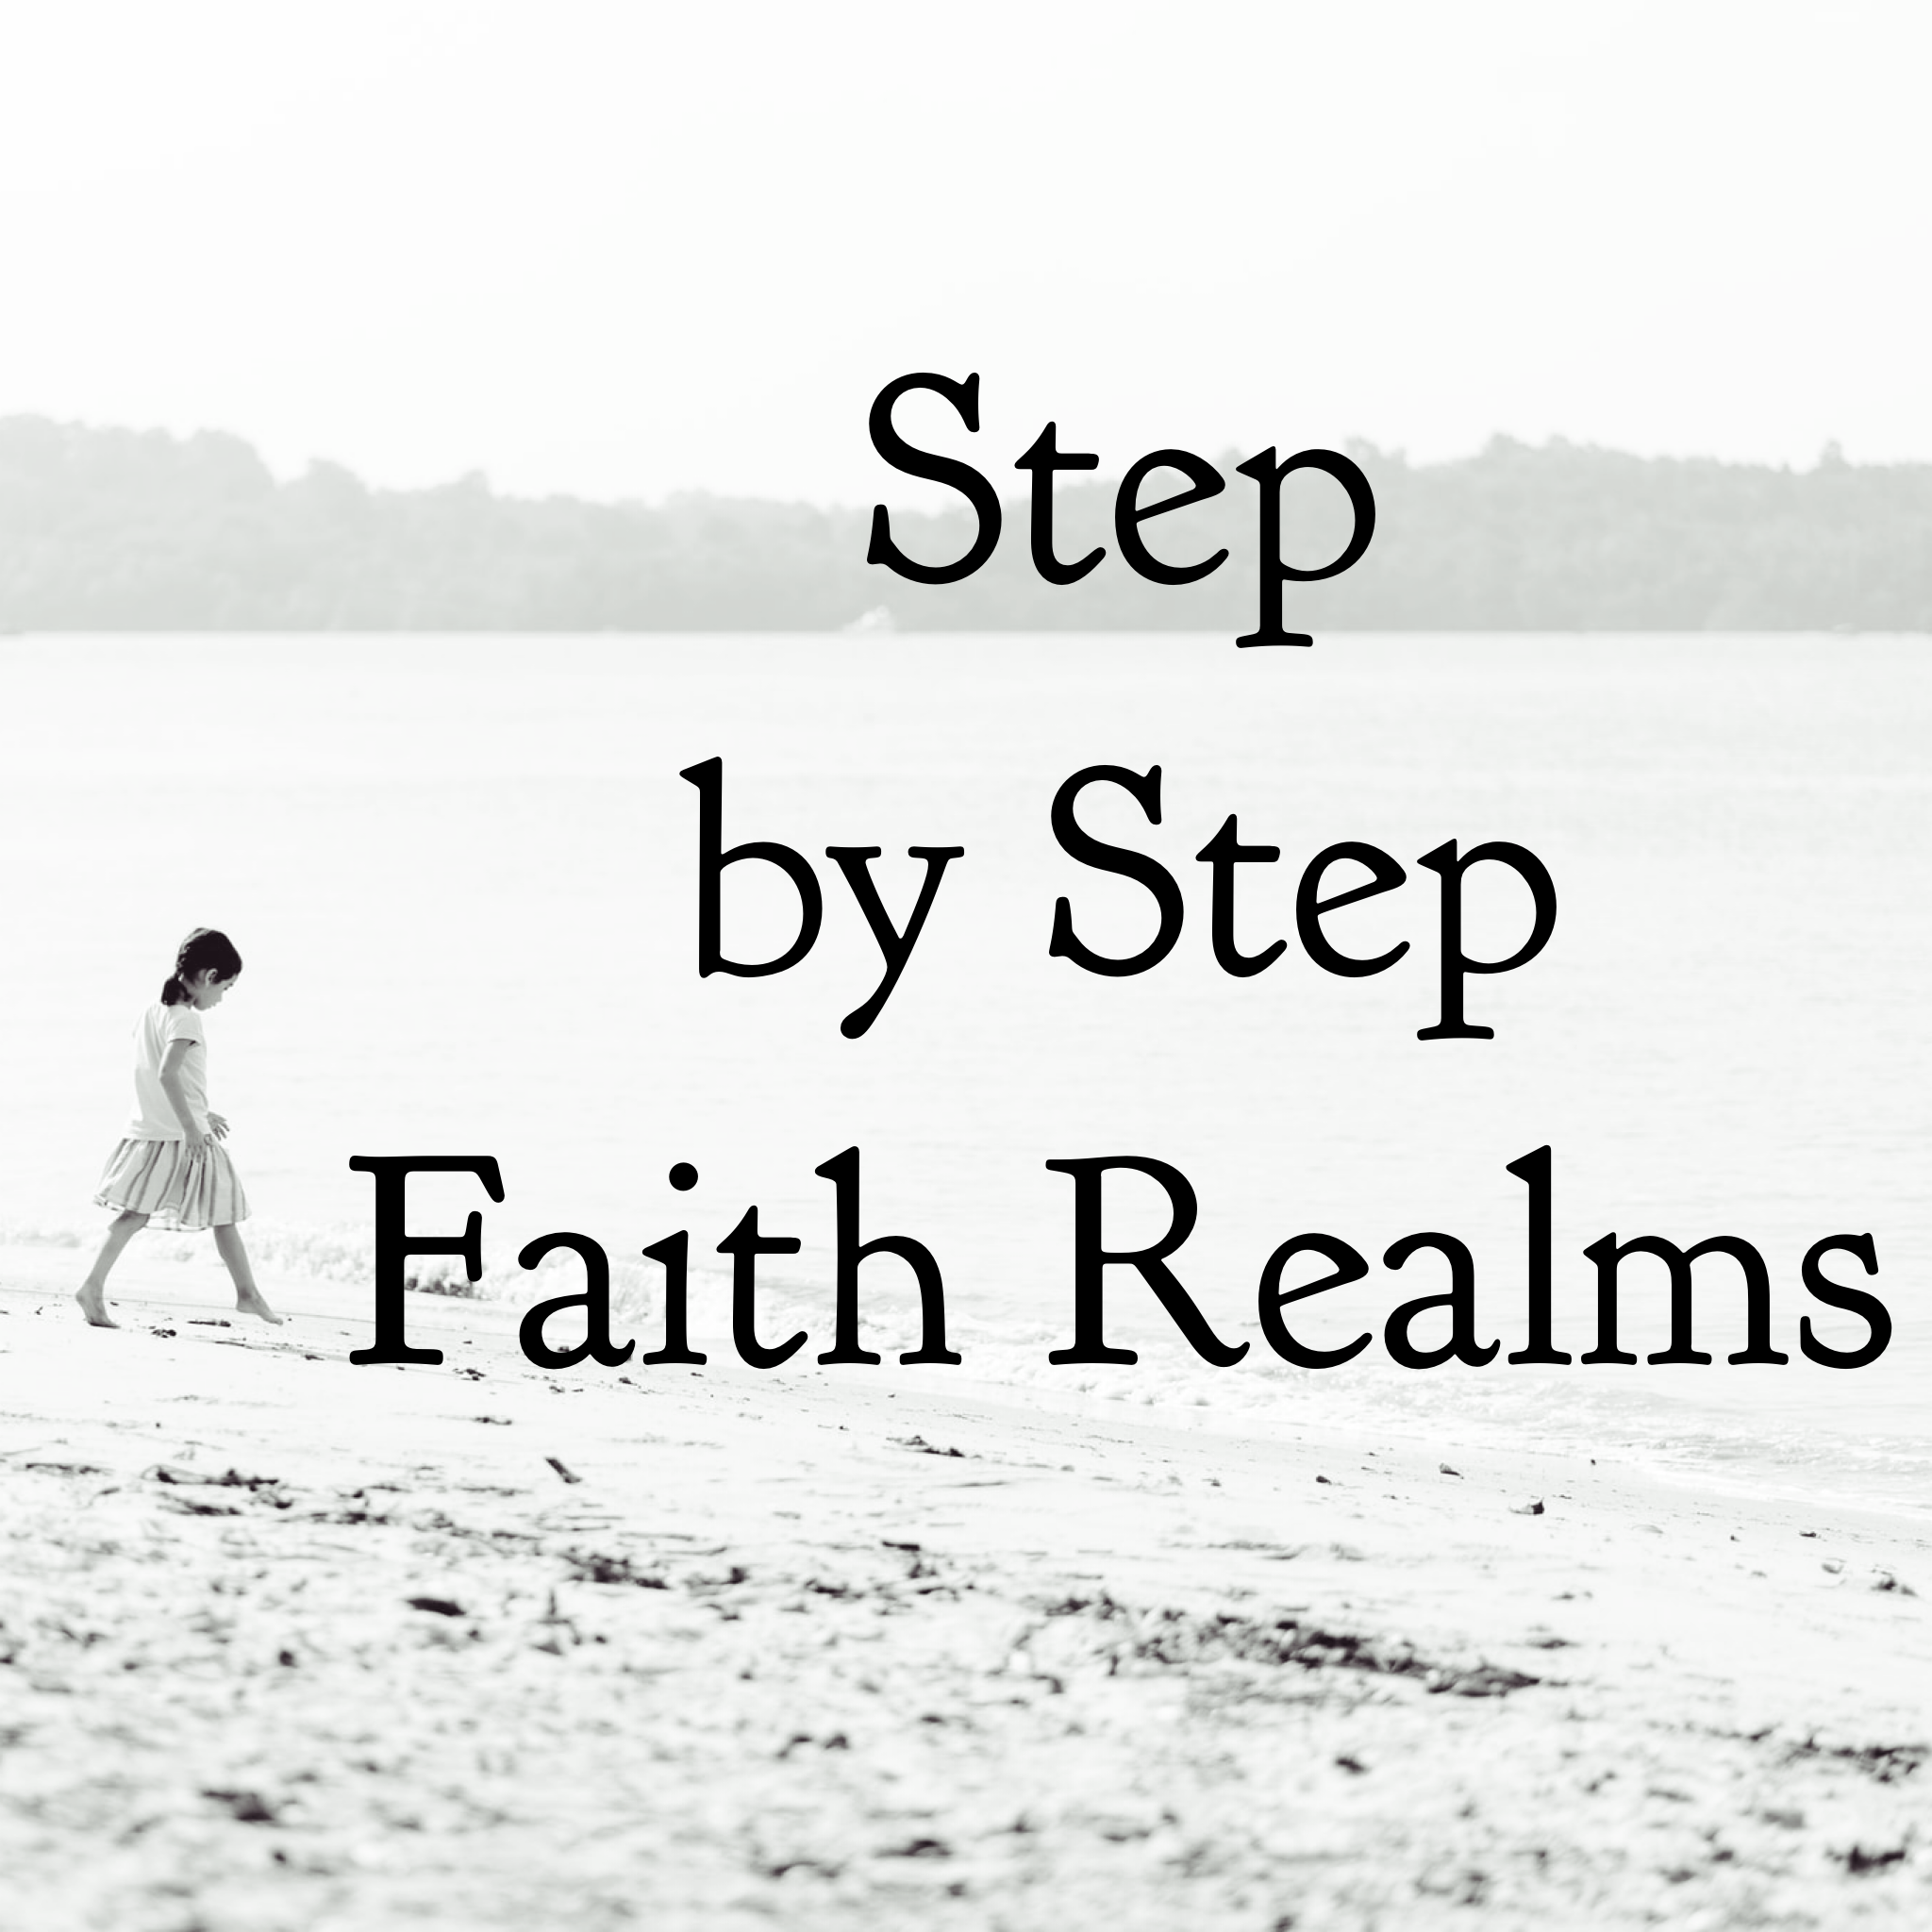 Step by Step Faith Realms - 9/17/19